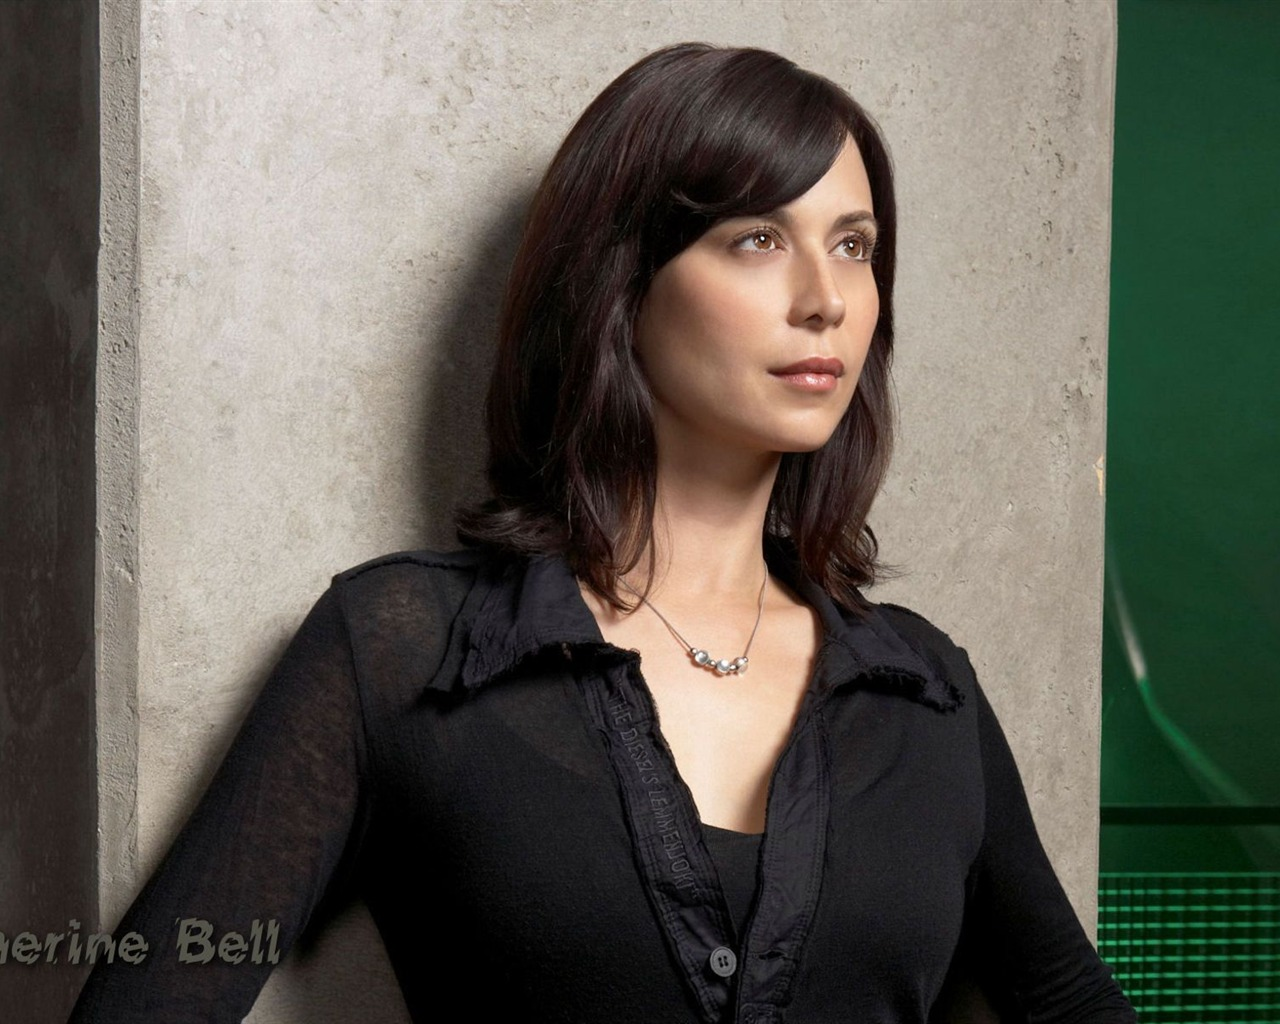 Catherine Bell #020 - 1280x1024 Wallpapers Pictures Photos Images